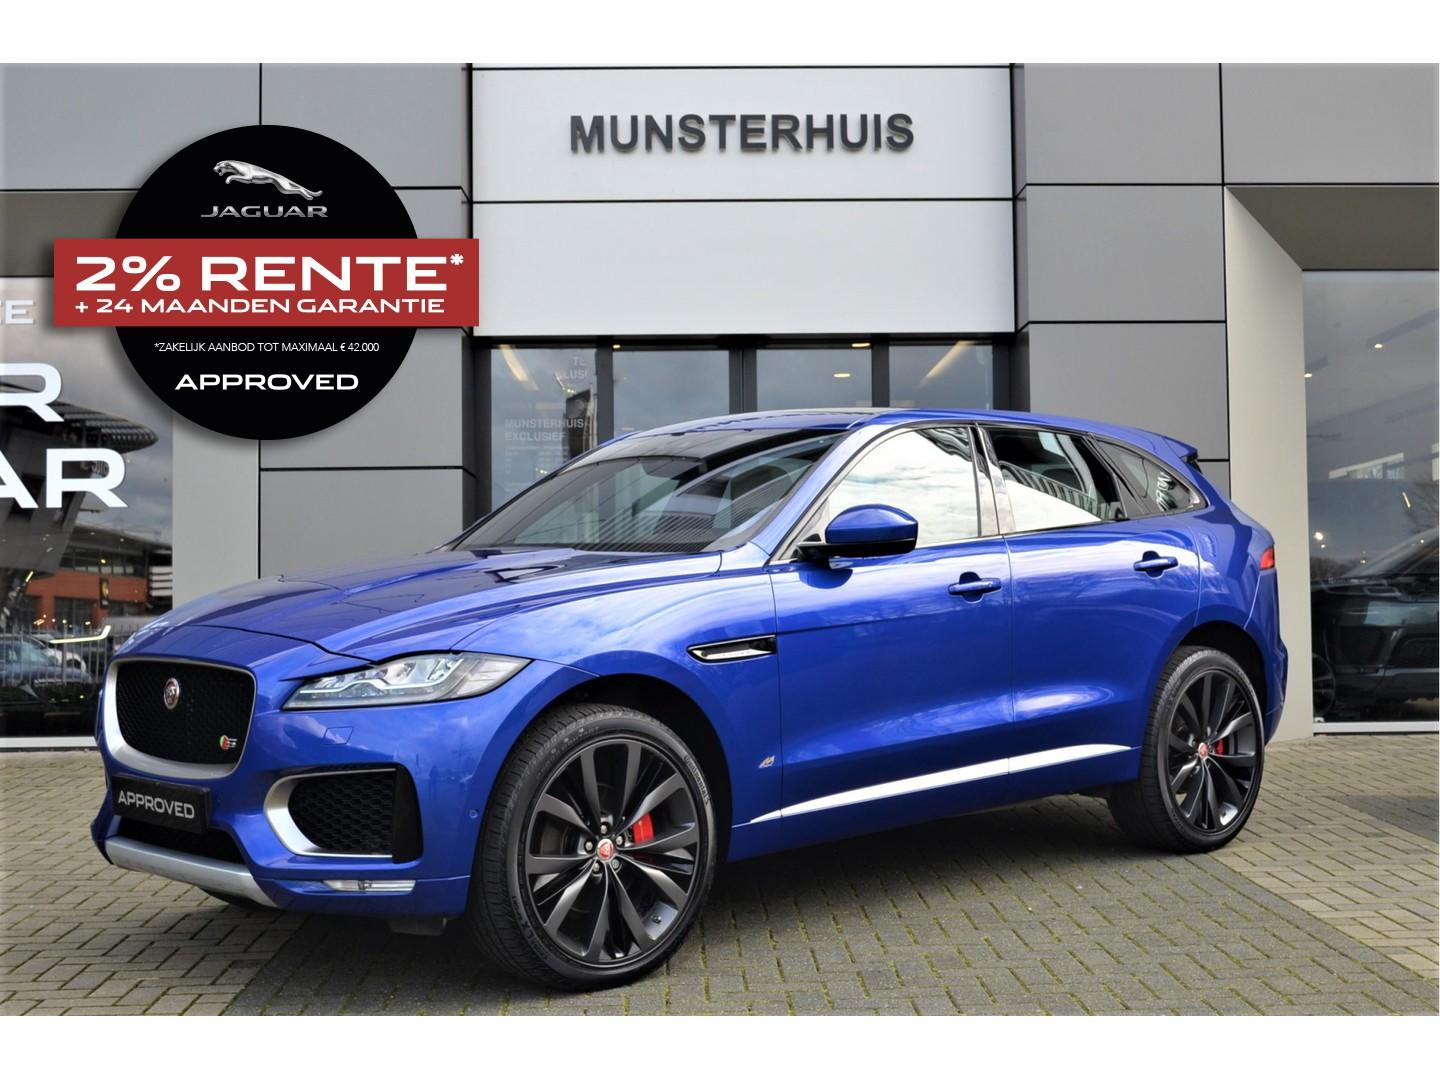 Jaguar F-pace 3.0d s first edition awd